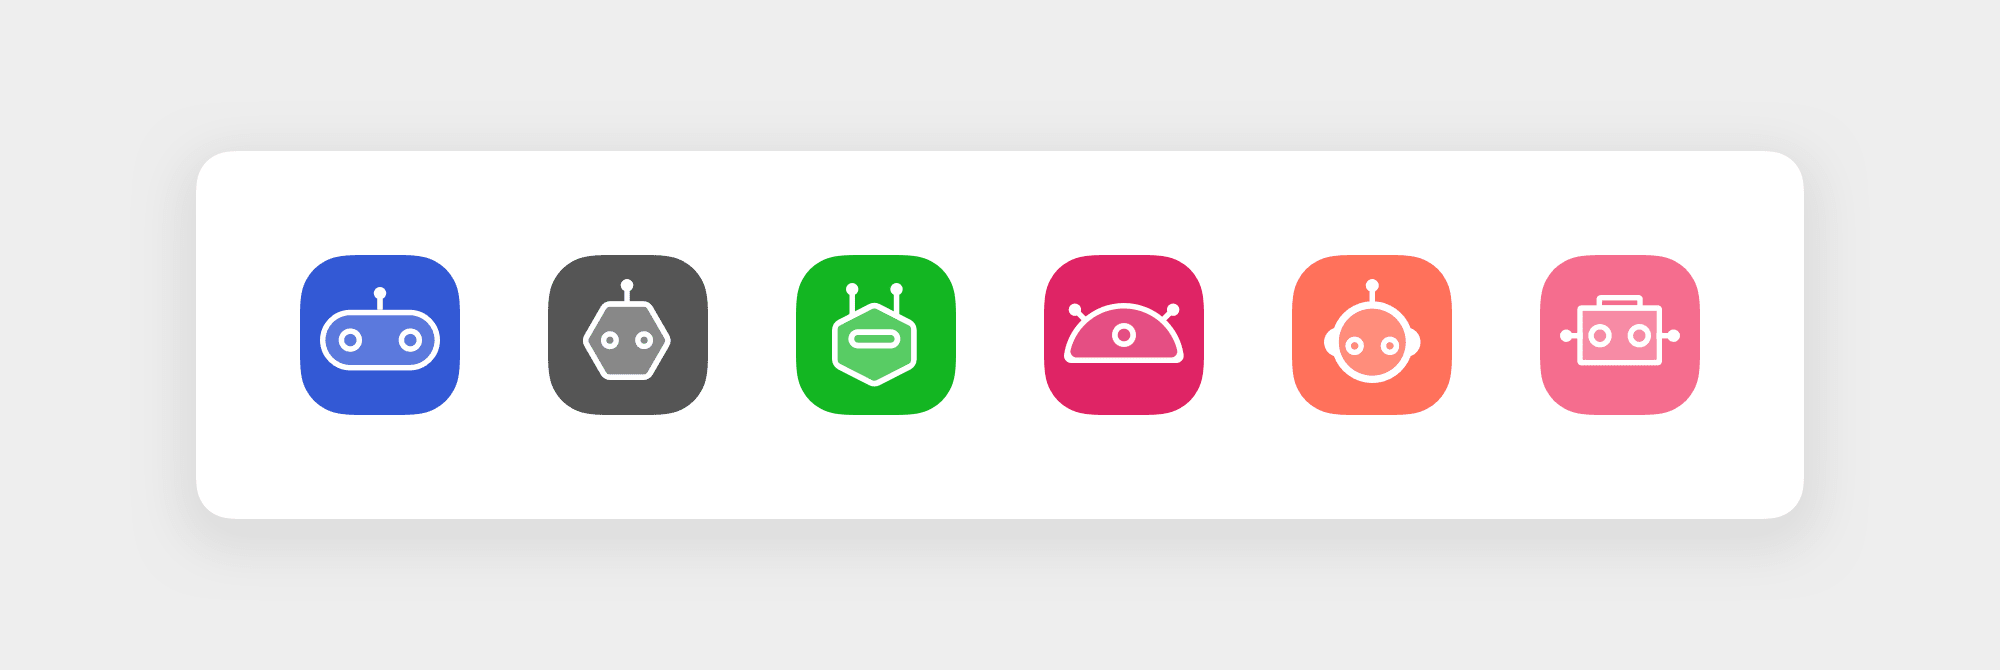 Icons for customizing your robots